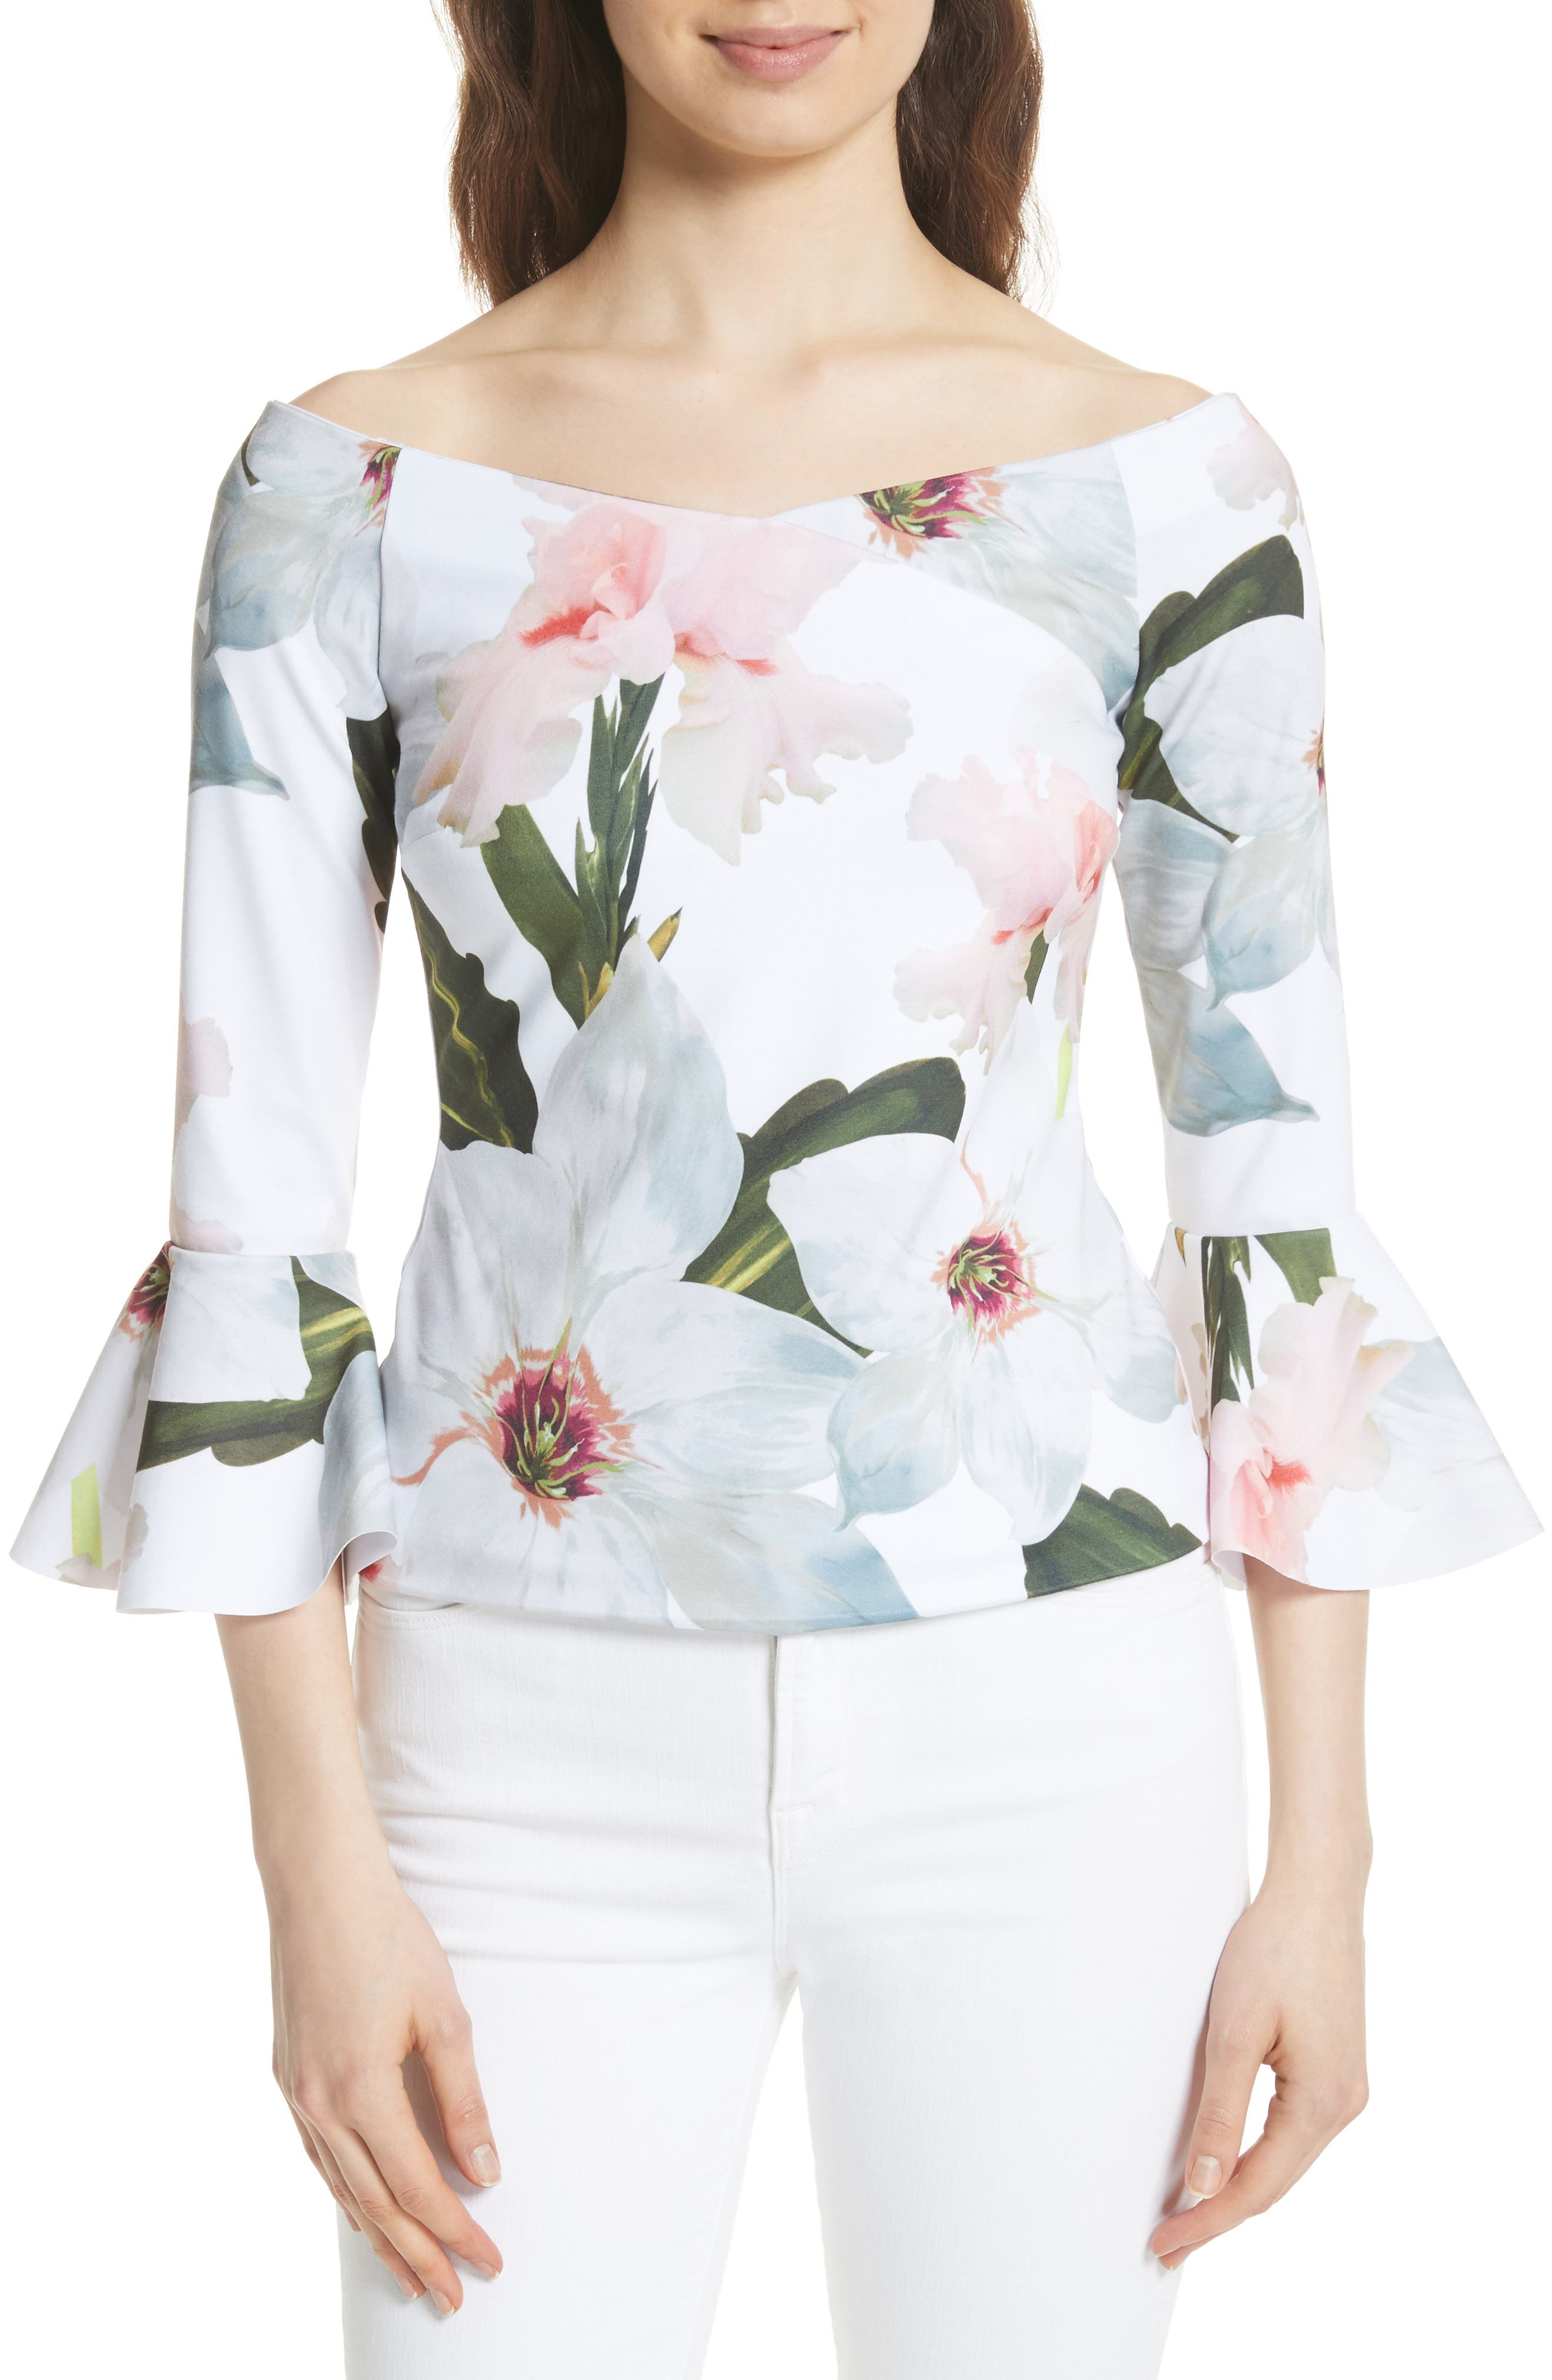 Chatsworth Bloom Top,                         Main,                         color, White